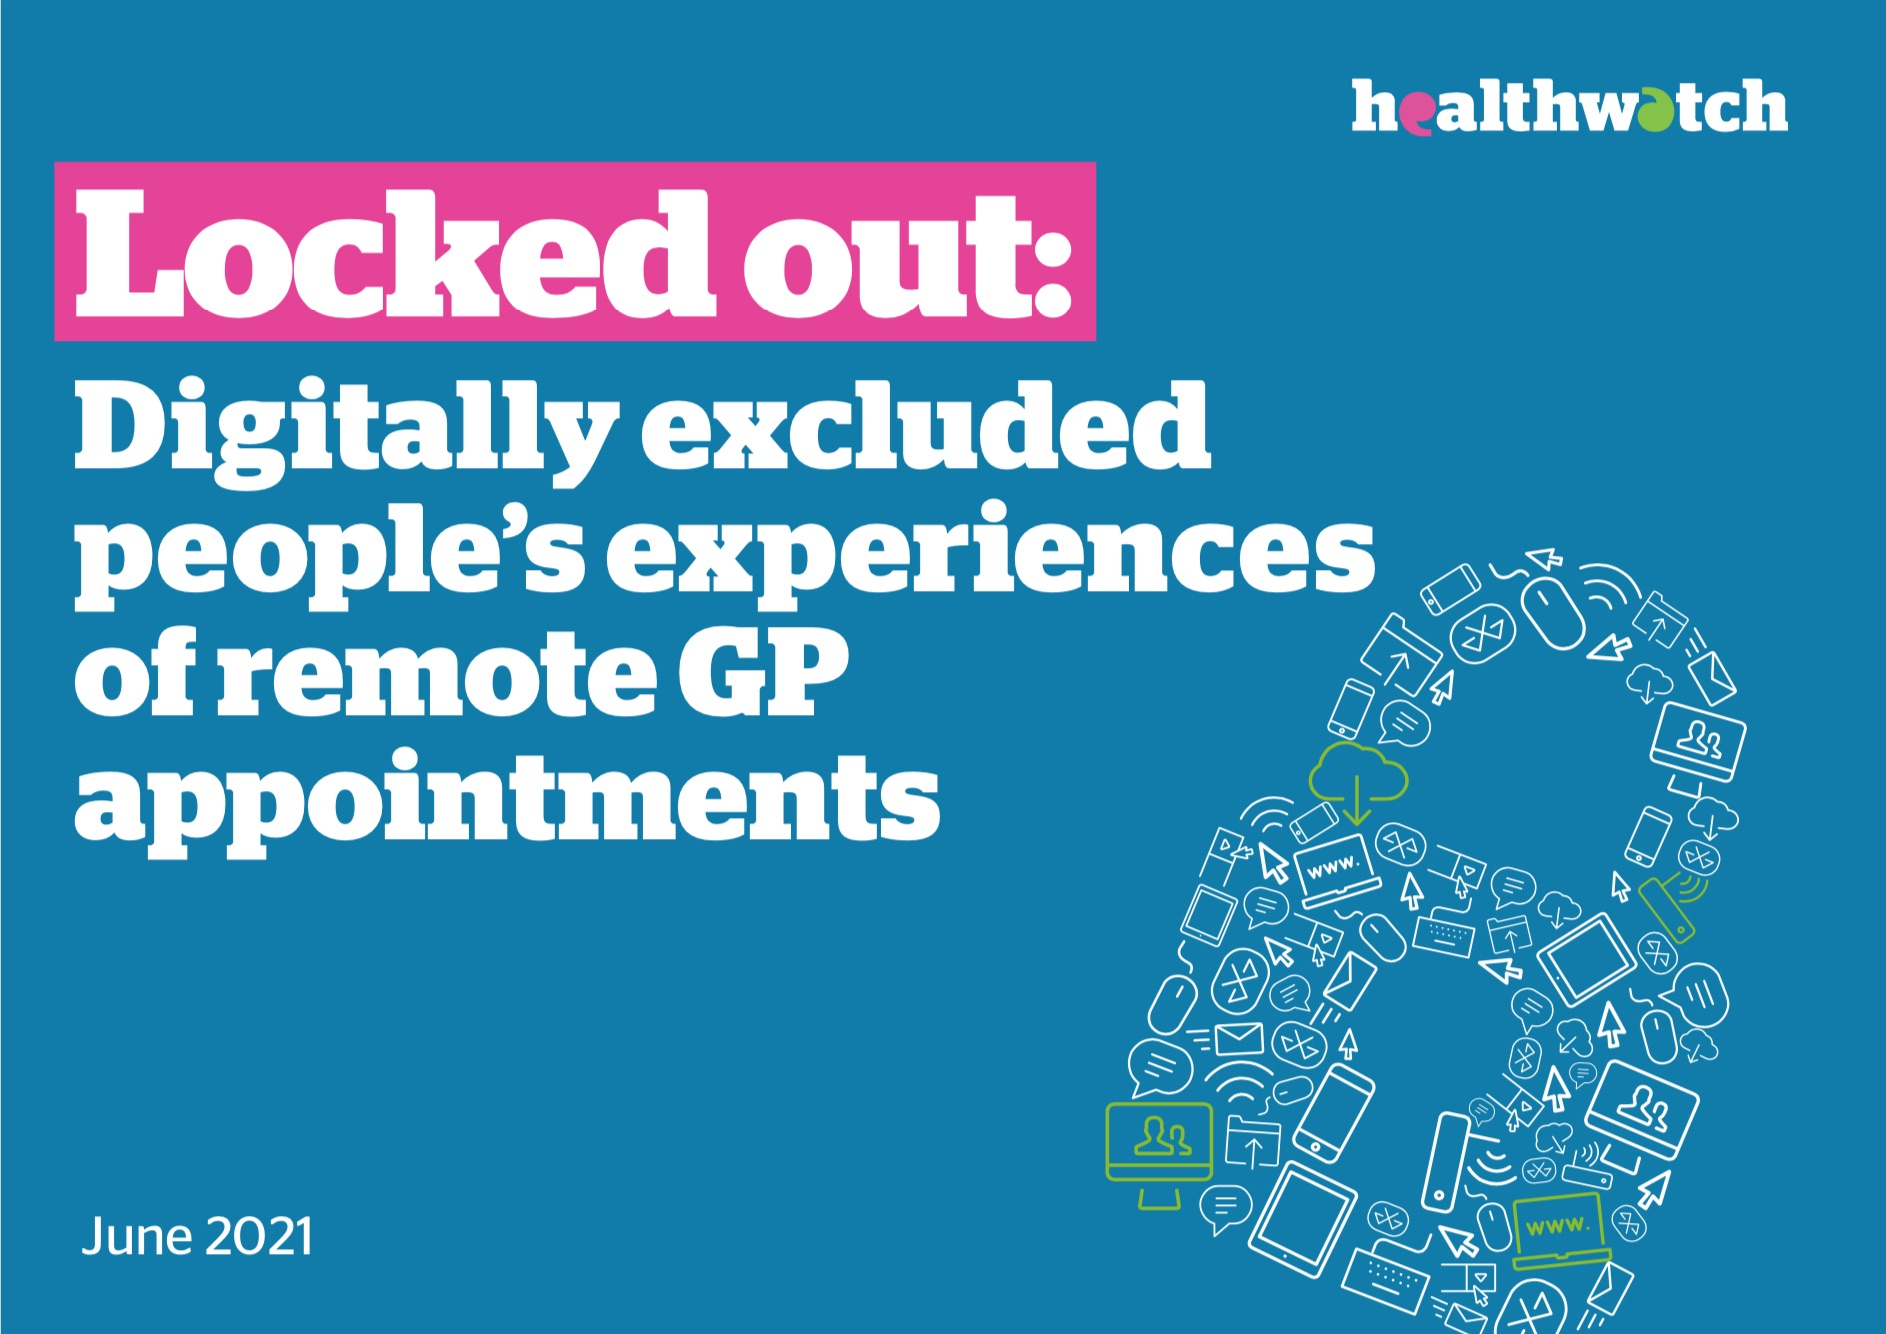 Locked out.  Digitally excluded people's experiences of remote GP appointments - cover